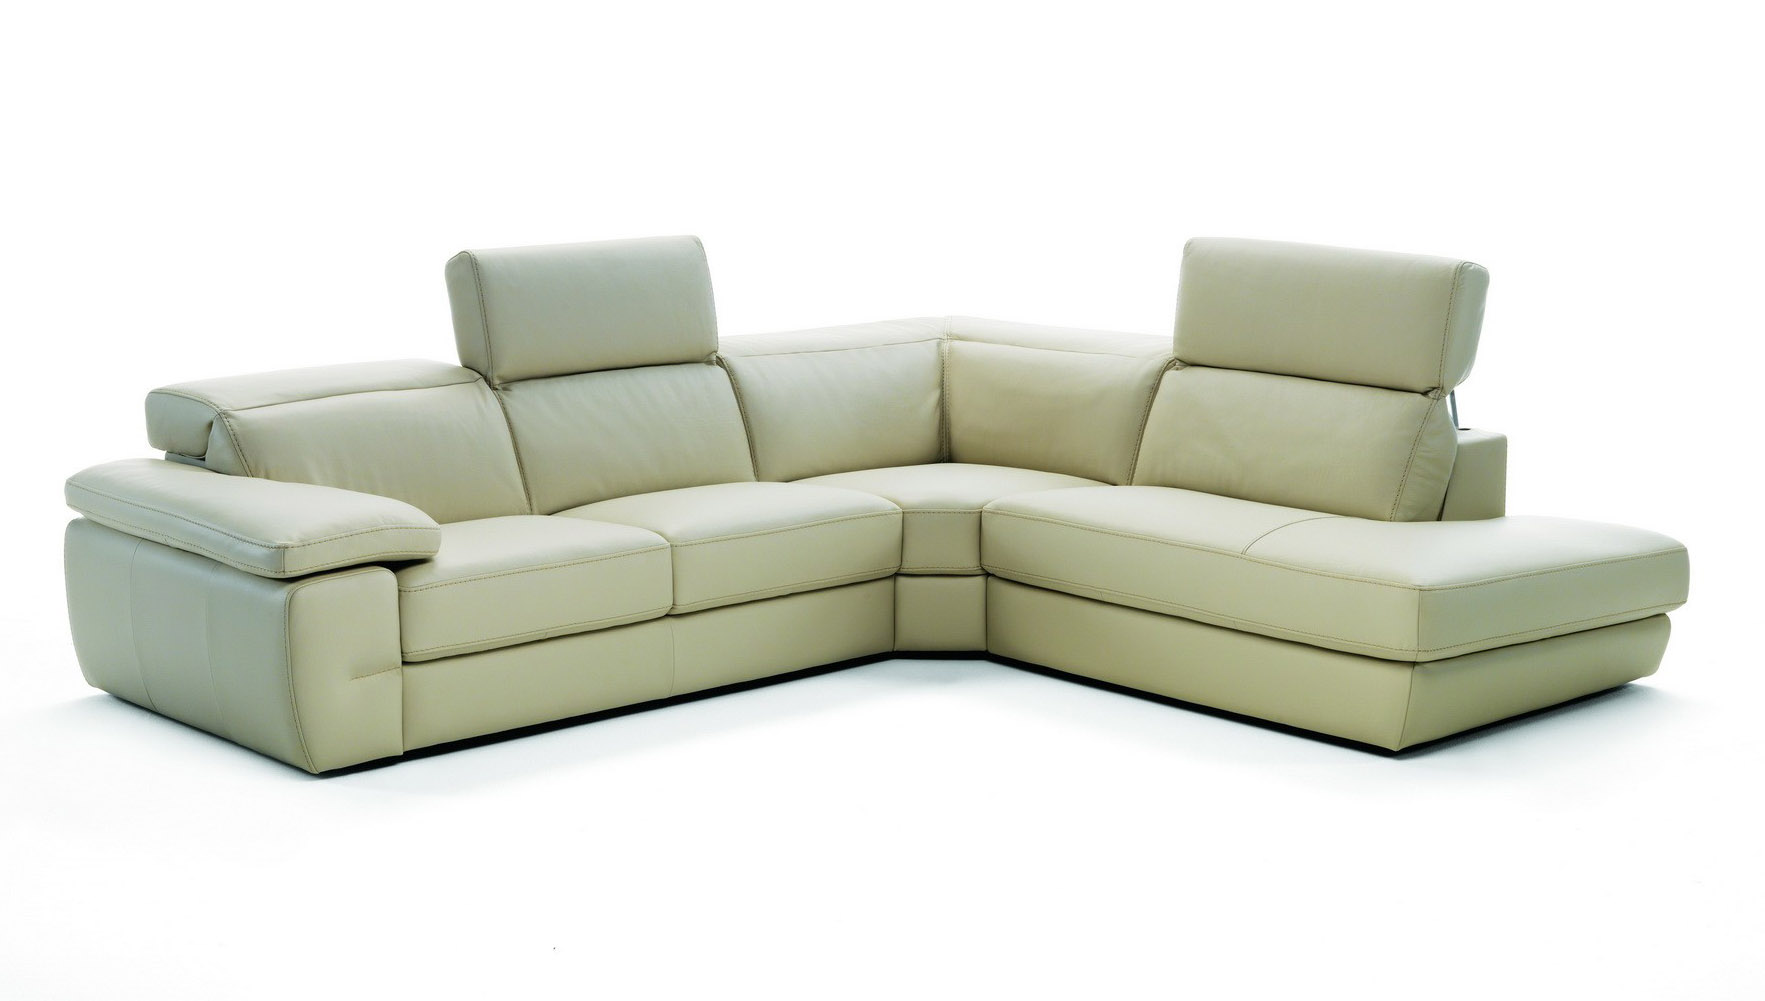 Industria Divani E Poltrone Elite Full Hand Wrapped Italian Leather Sectionals Boston